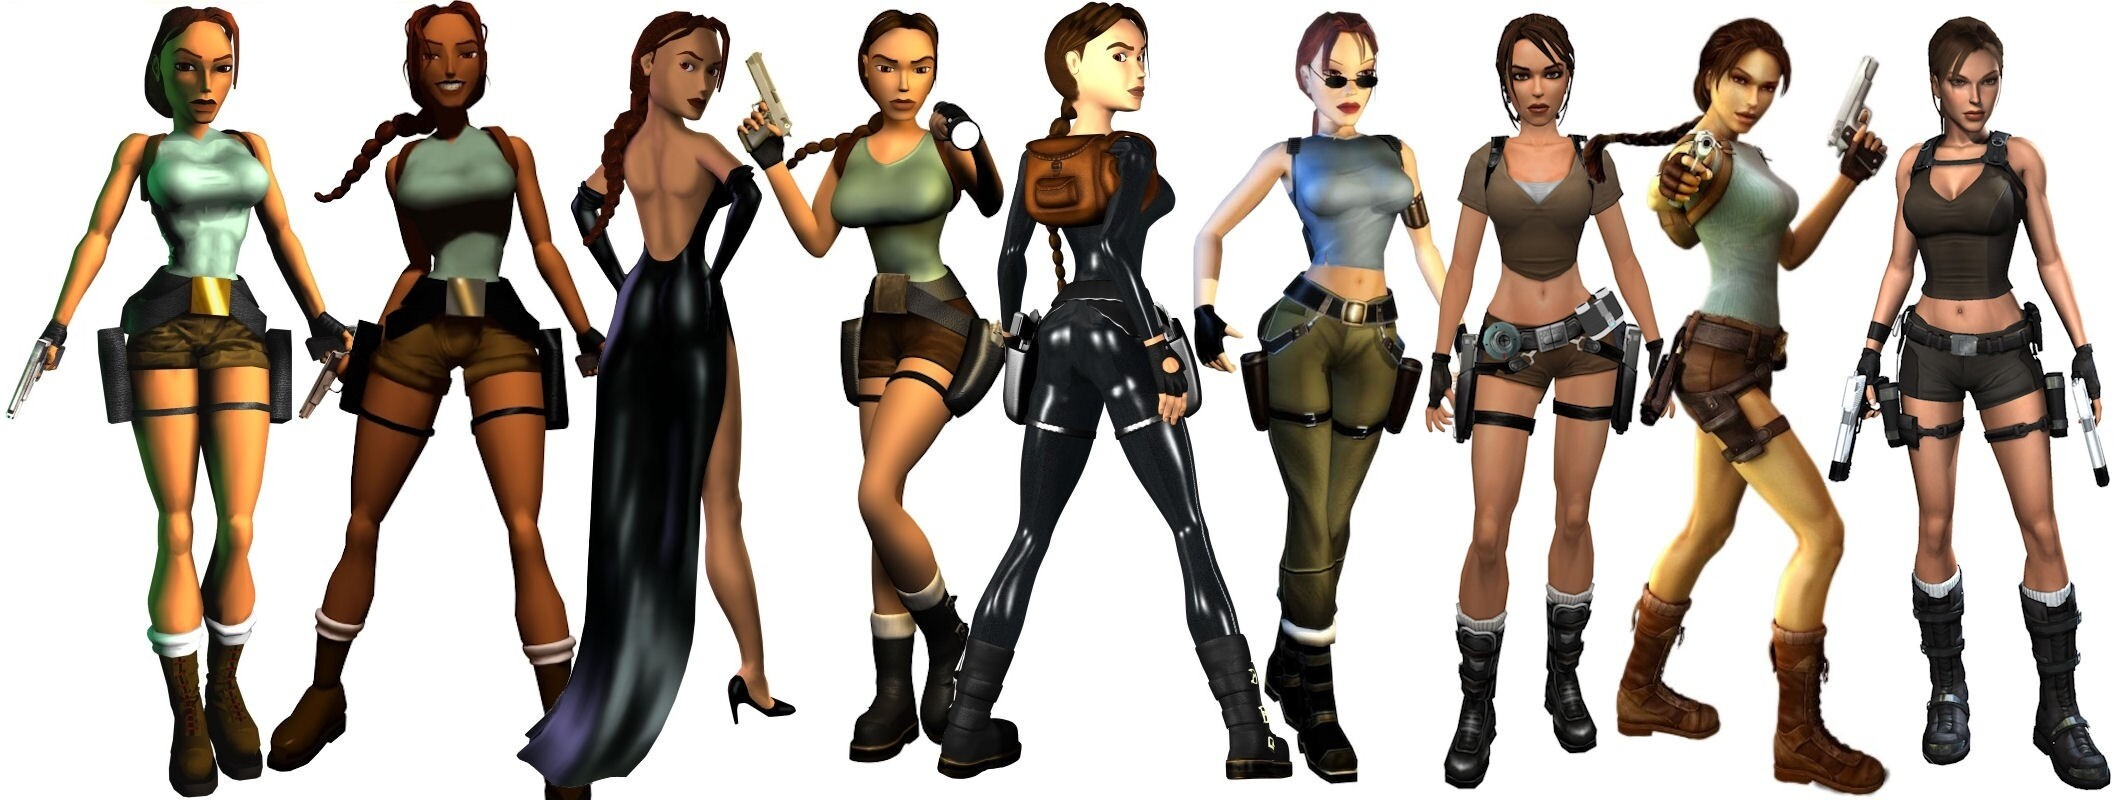 Lara croft old game hentia muscle pornstar